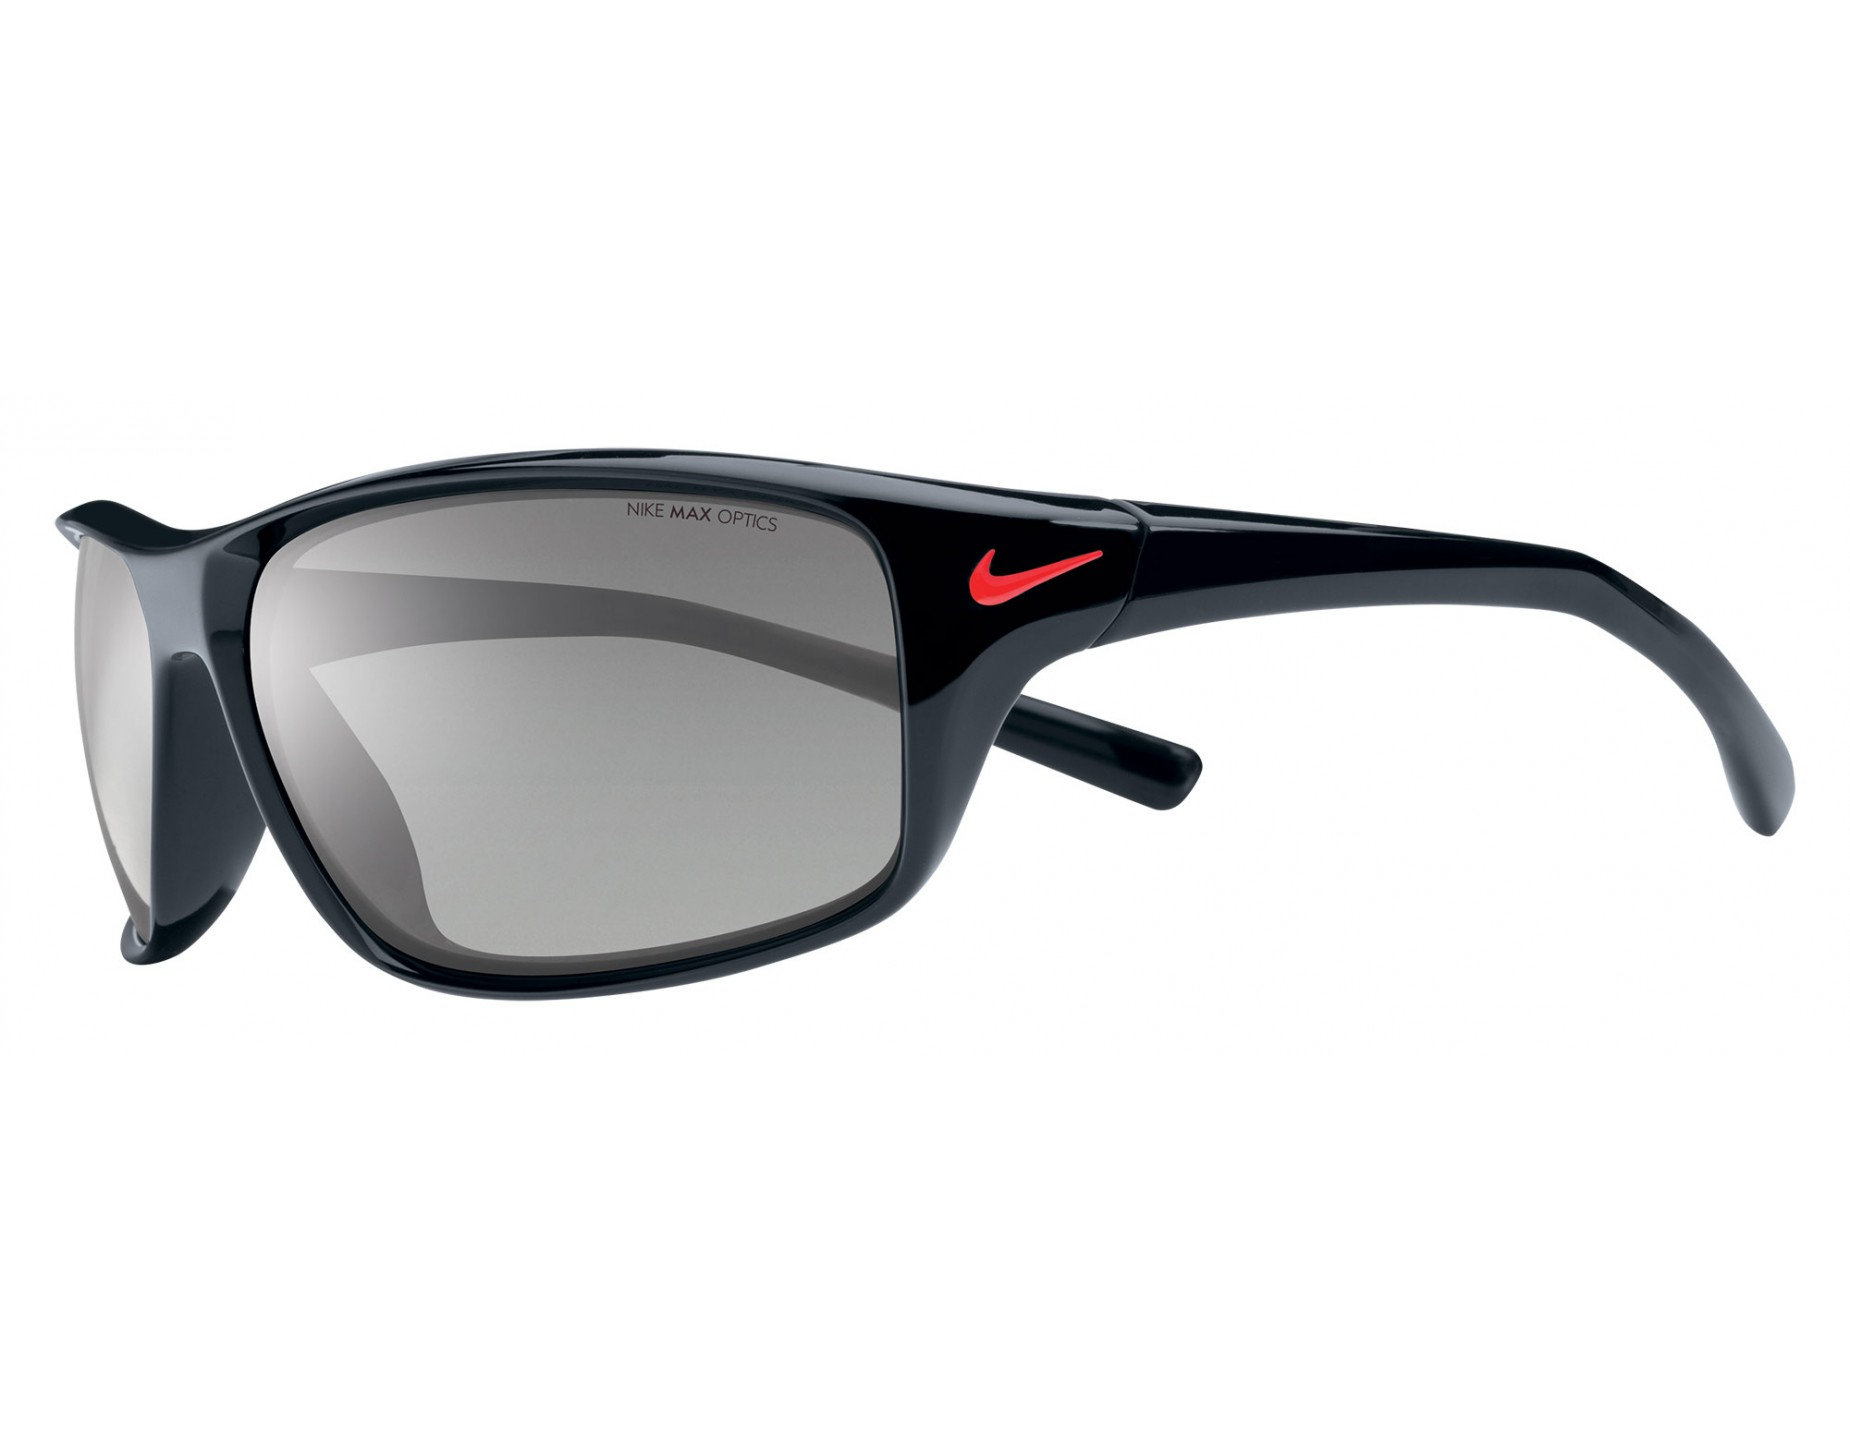 094fbedbfd2 Nike ADRENALINE sports glasses – everything you need!